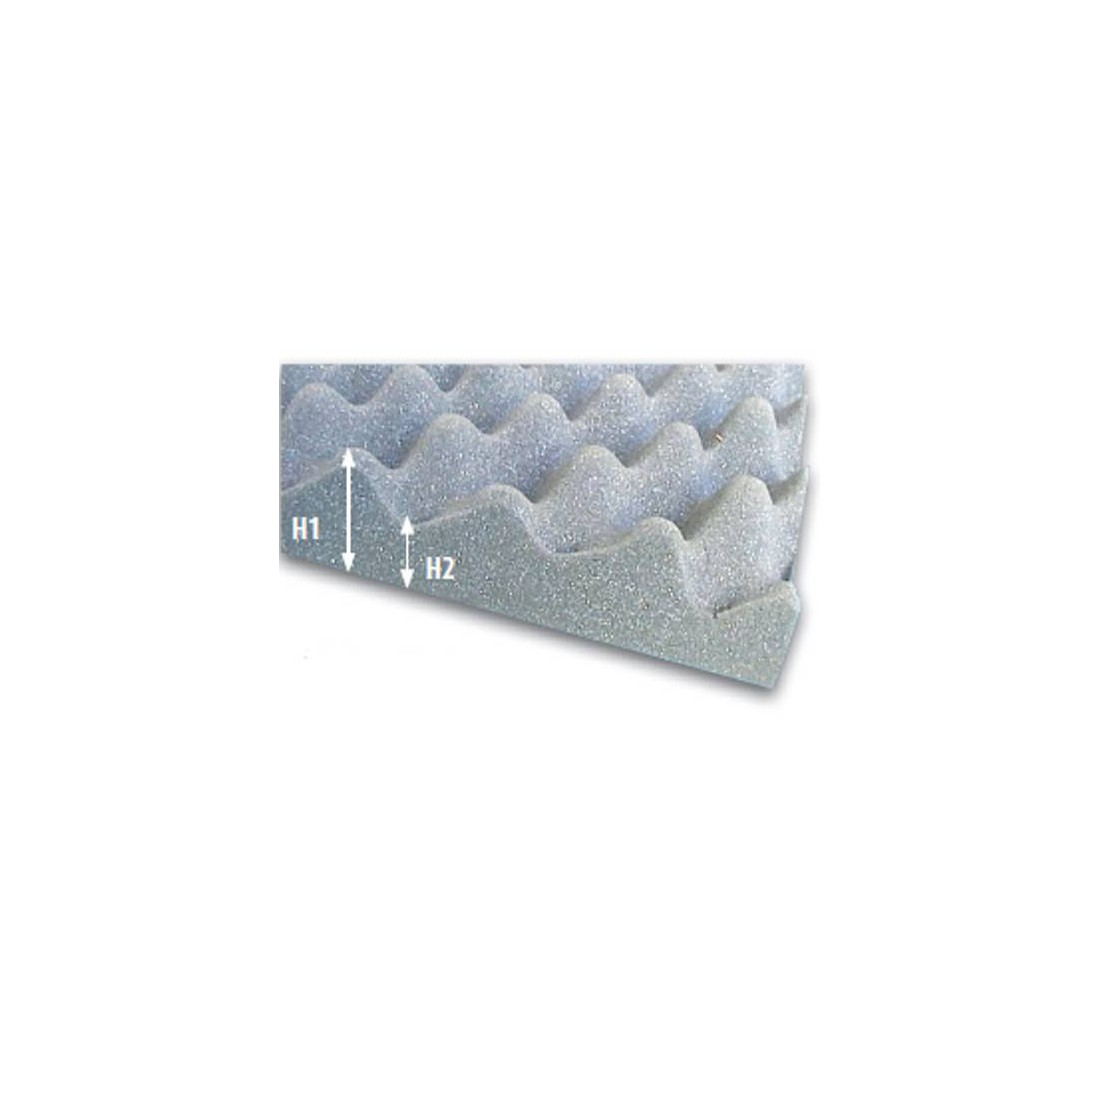 Foam plate flexible high resilience convoluted foam plate soundproofing 150x200 cm